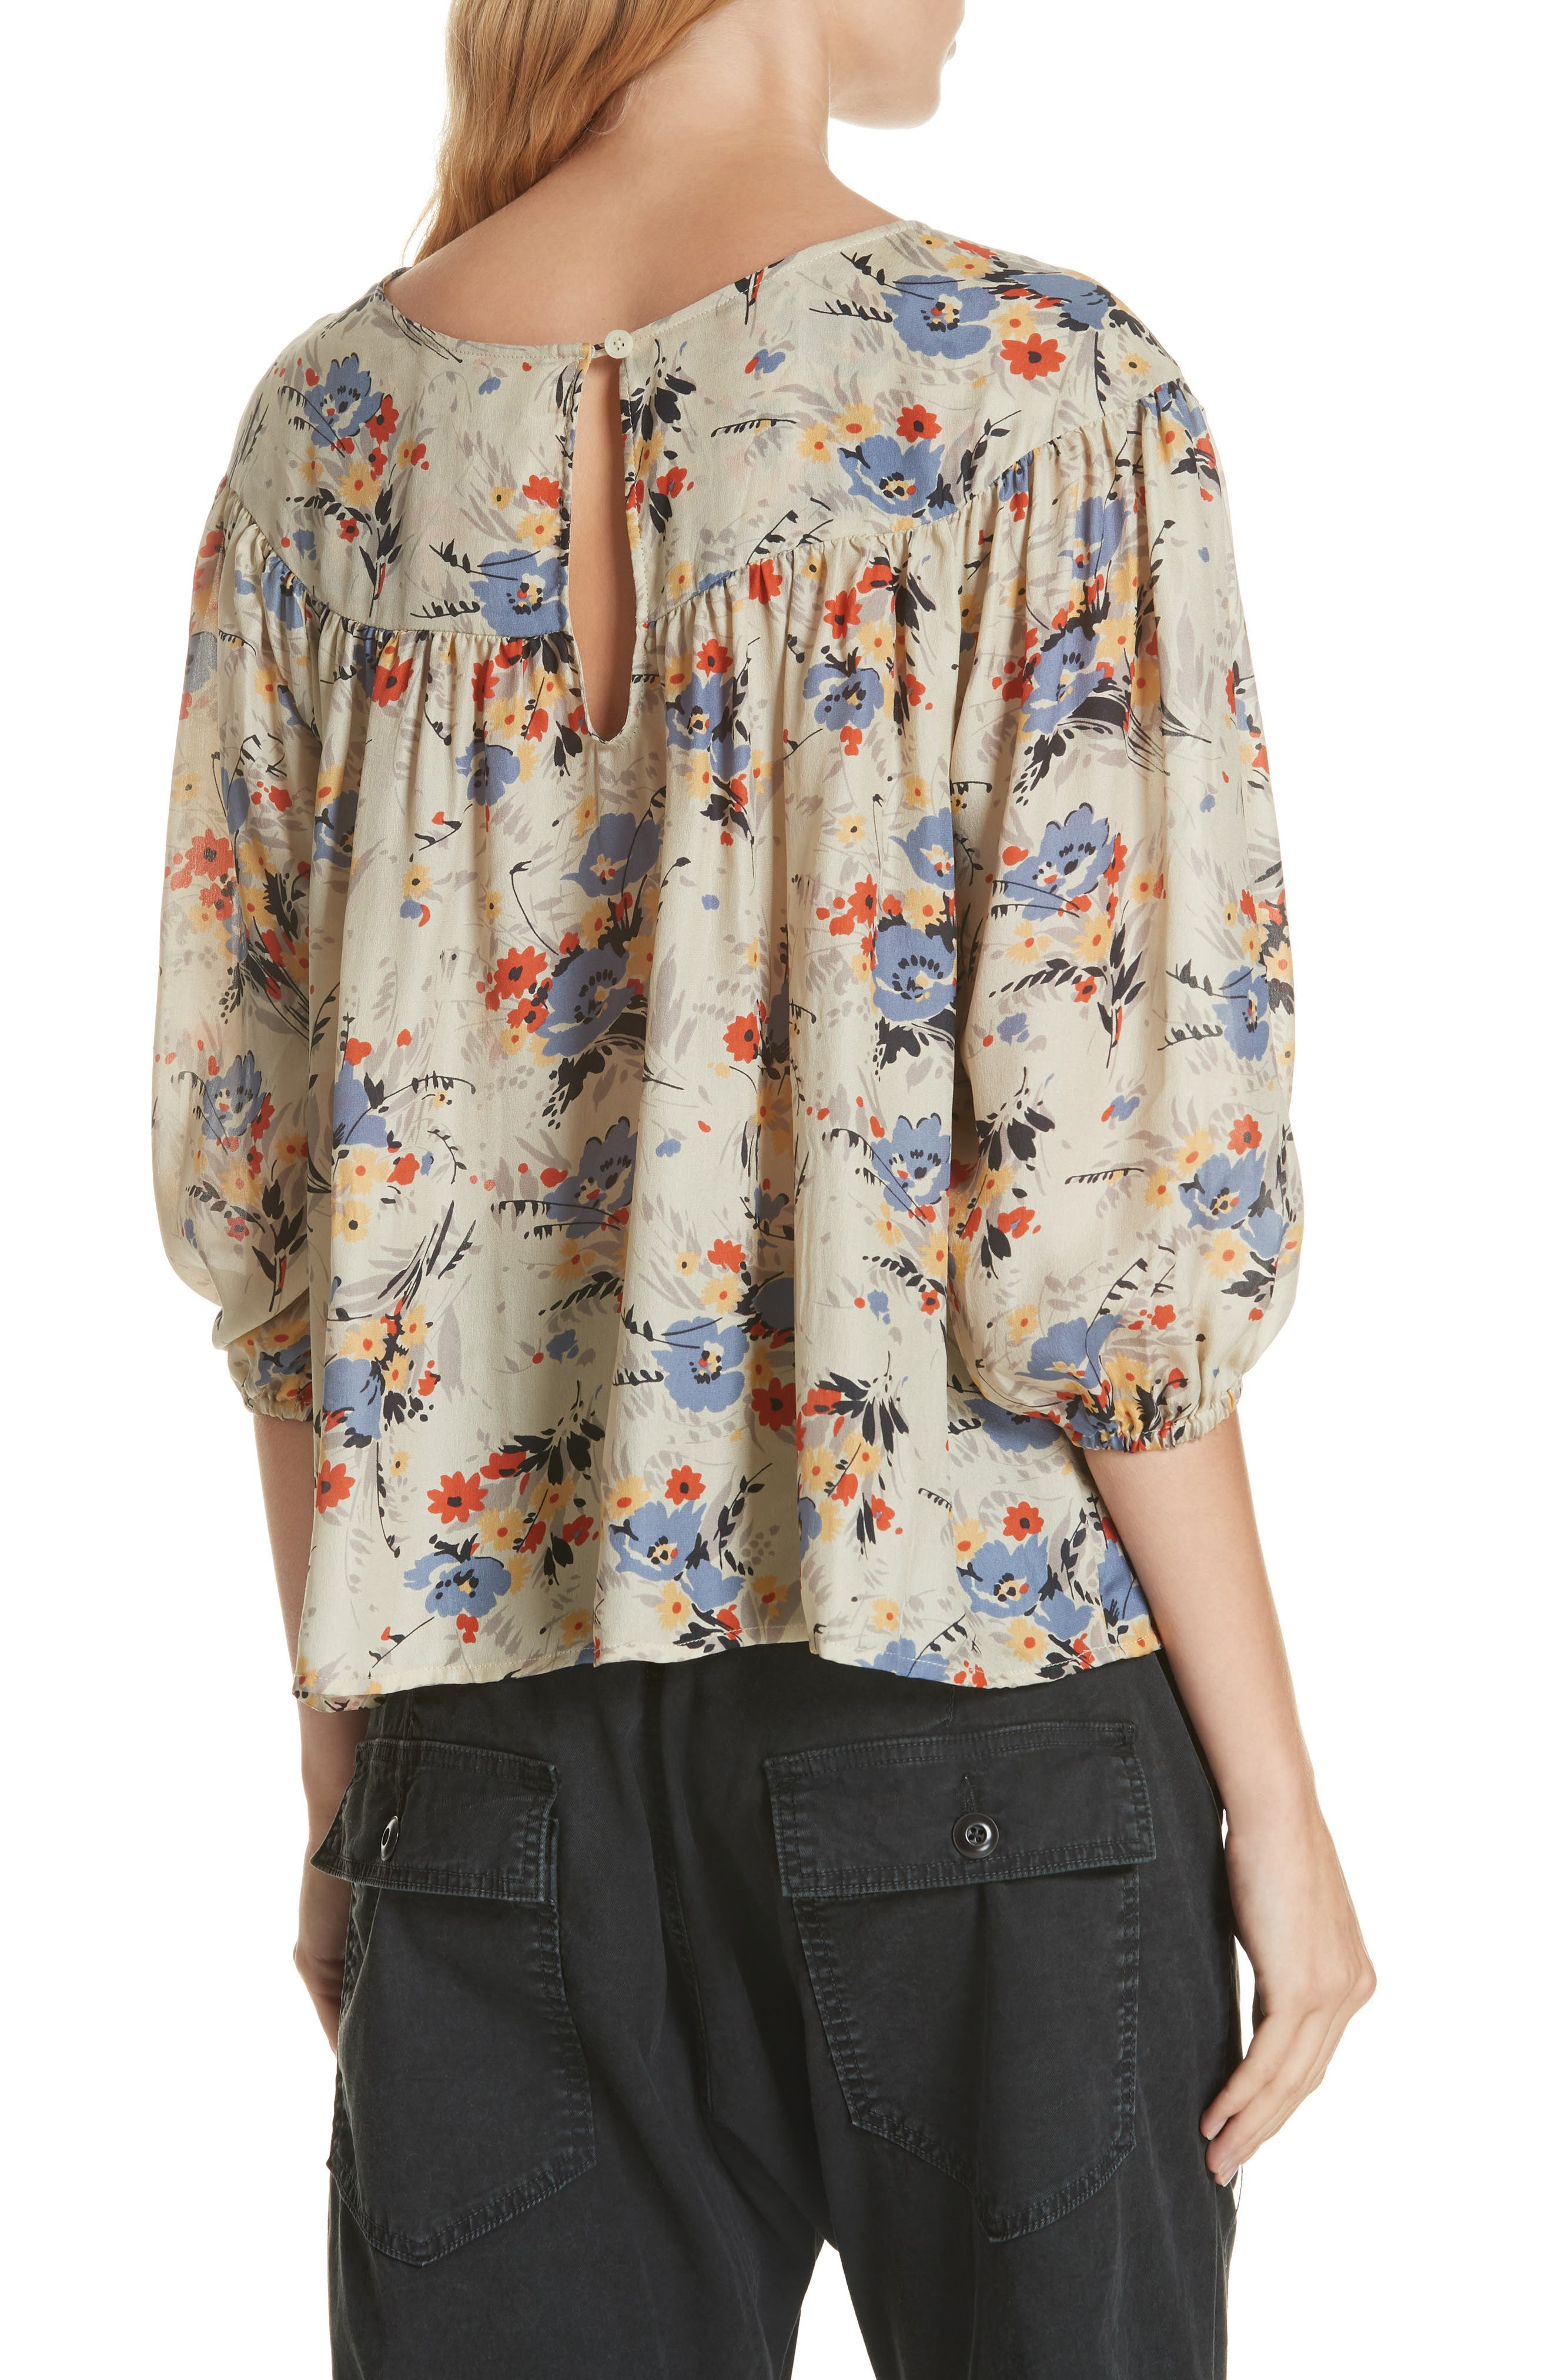 Duskfall Silk Blouse,                             Alternate thumbnail 2, color,                             WOODLAND FLORAL